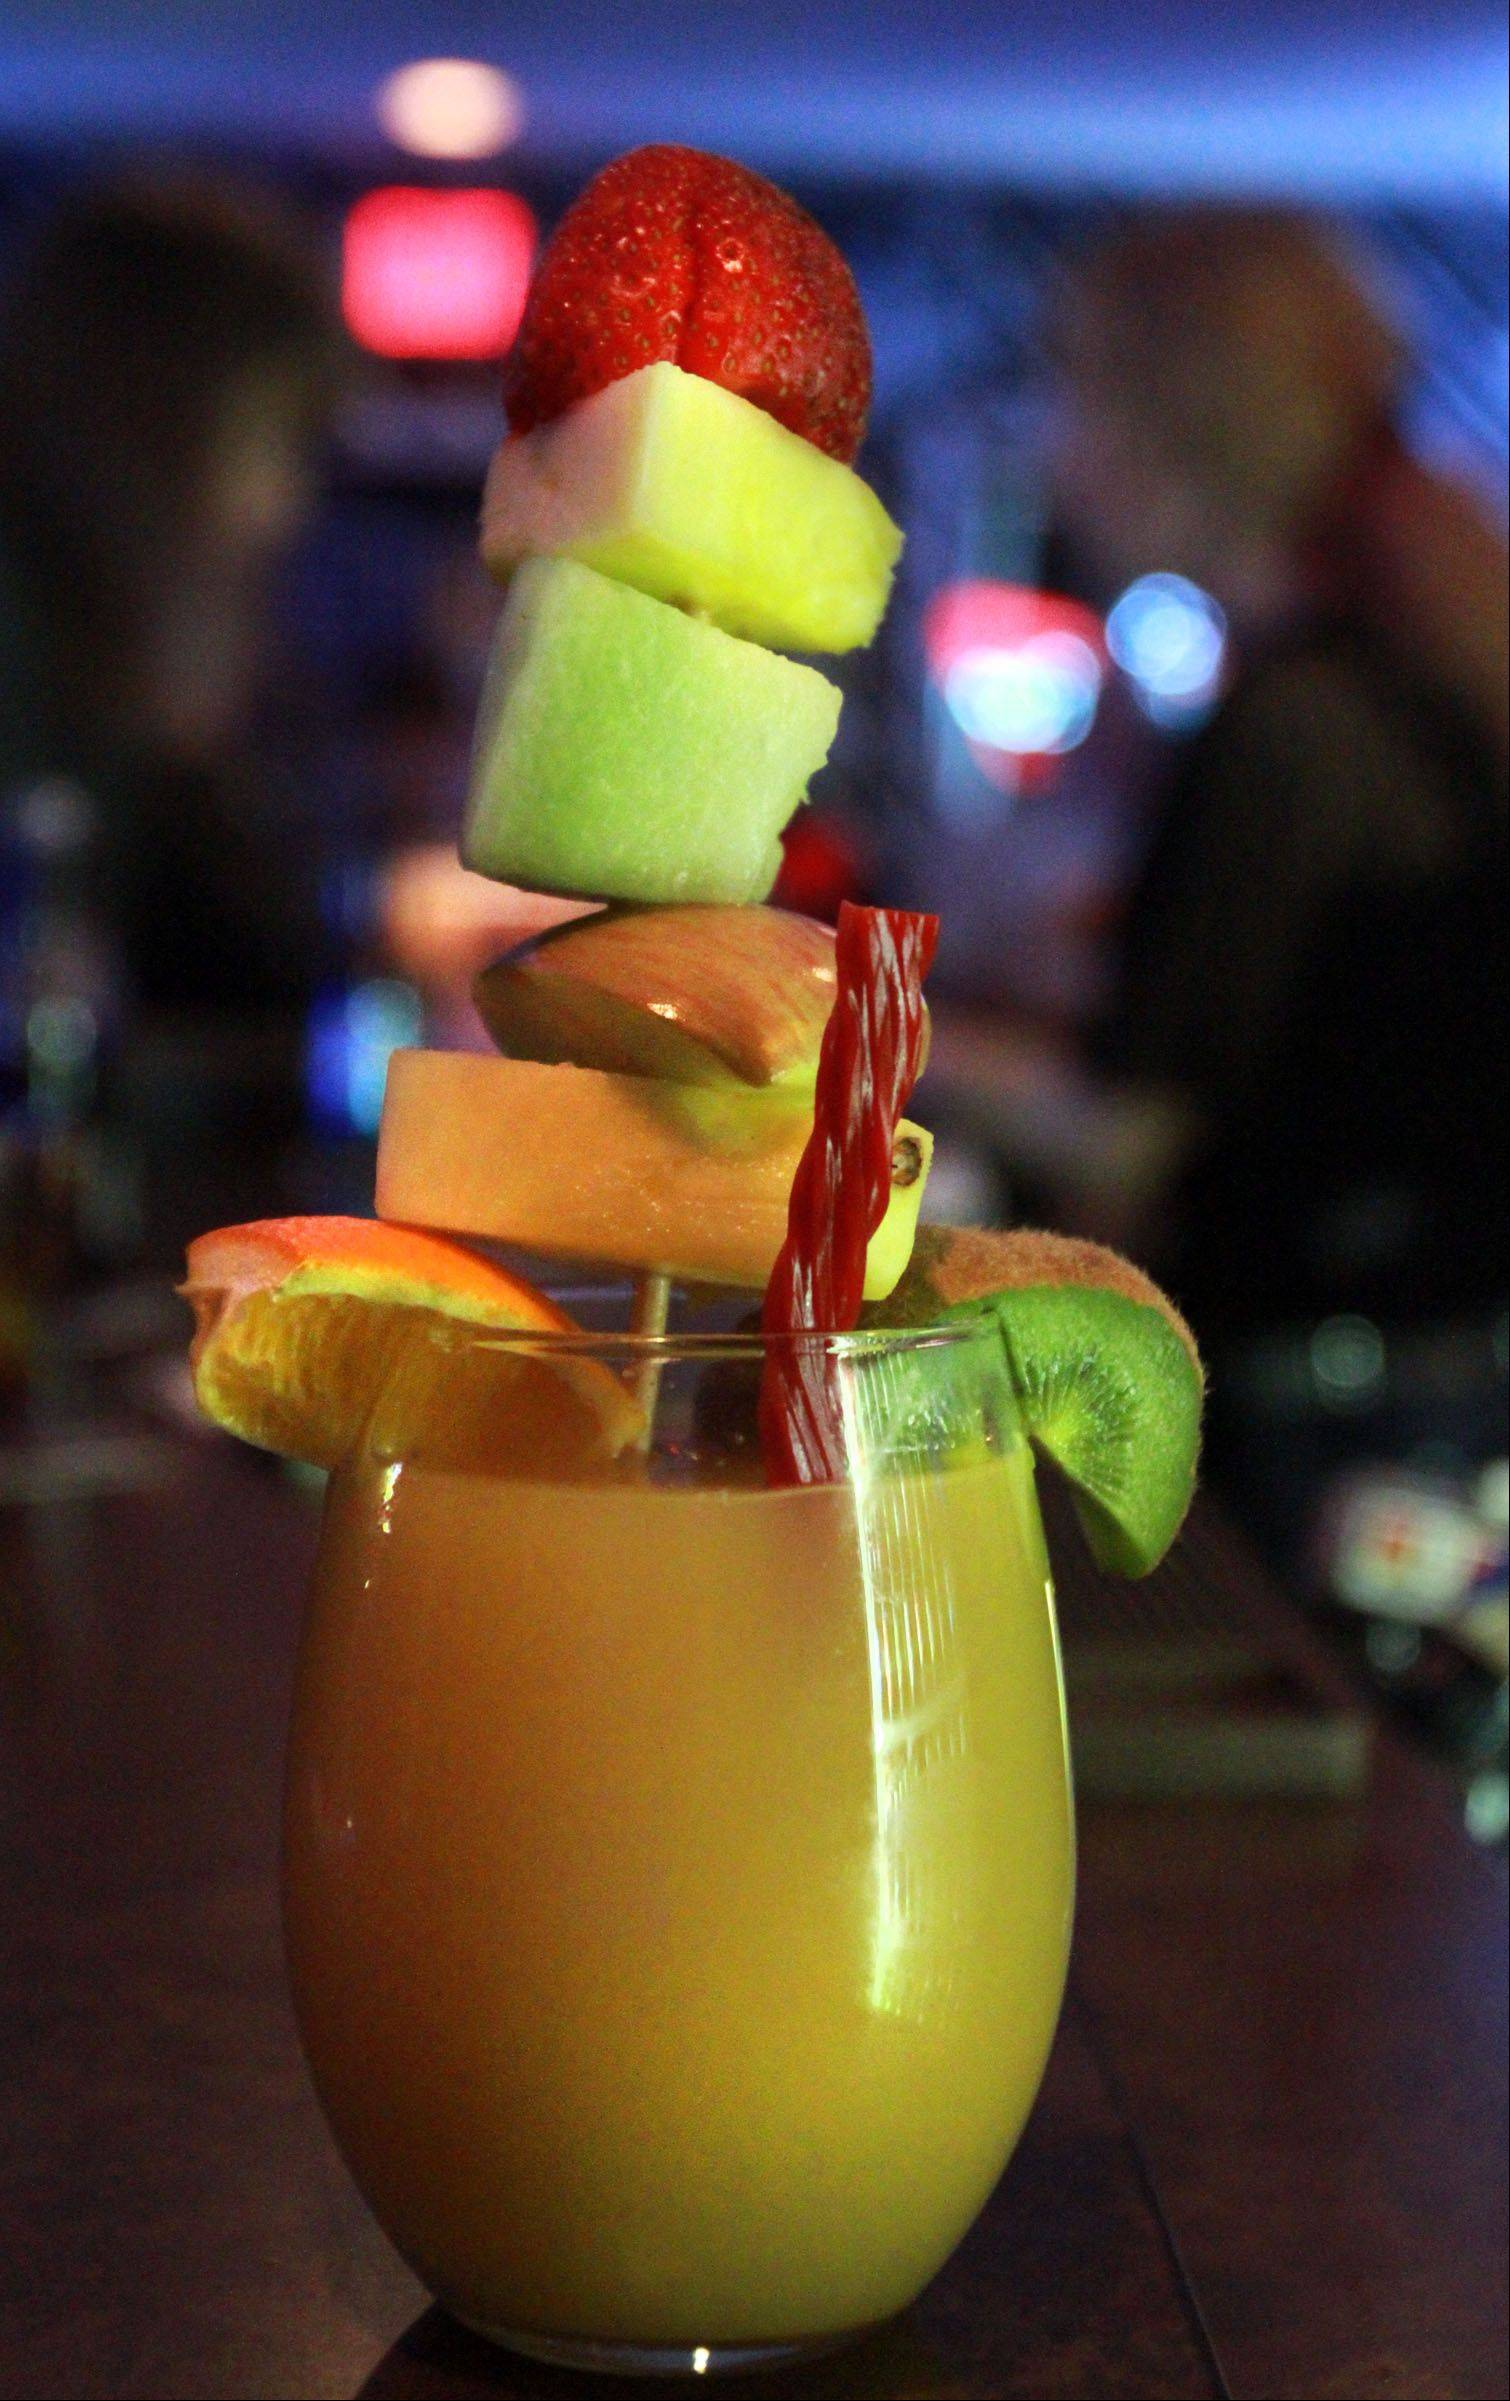 The Monster Mimosa at Route 12 Bar & Grill is part drink -- part snack. It's made with Angry Orchard Hard Cider and orange juice and garnished with fruit and licorice.